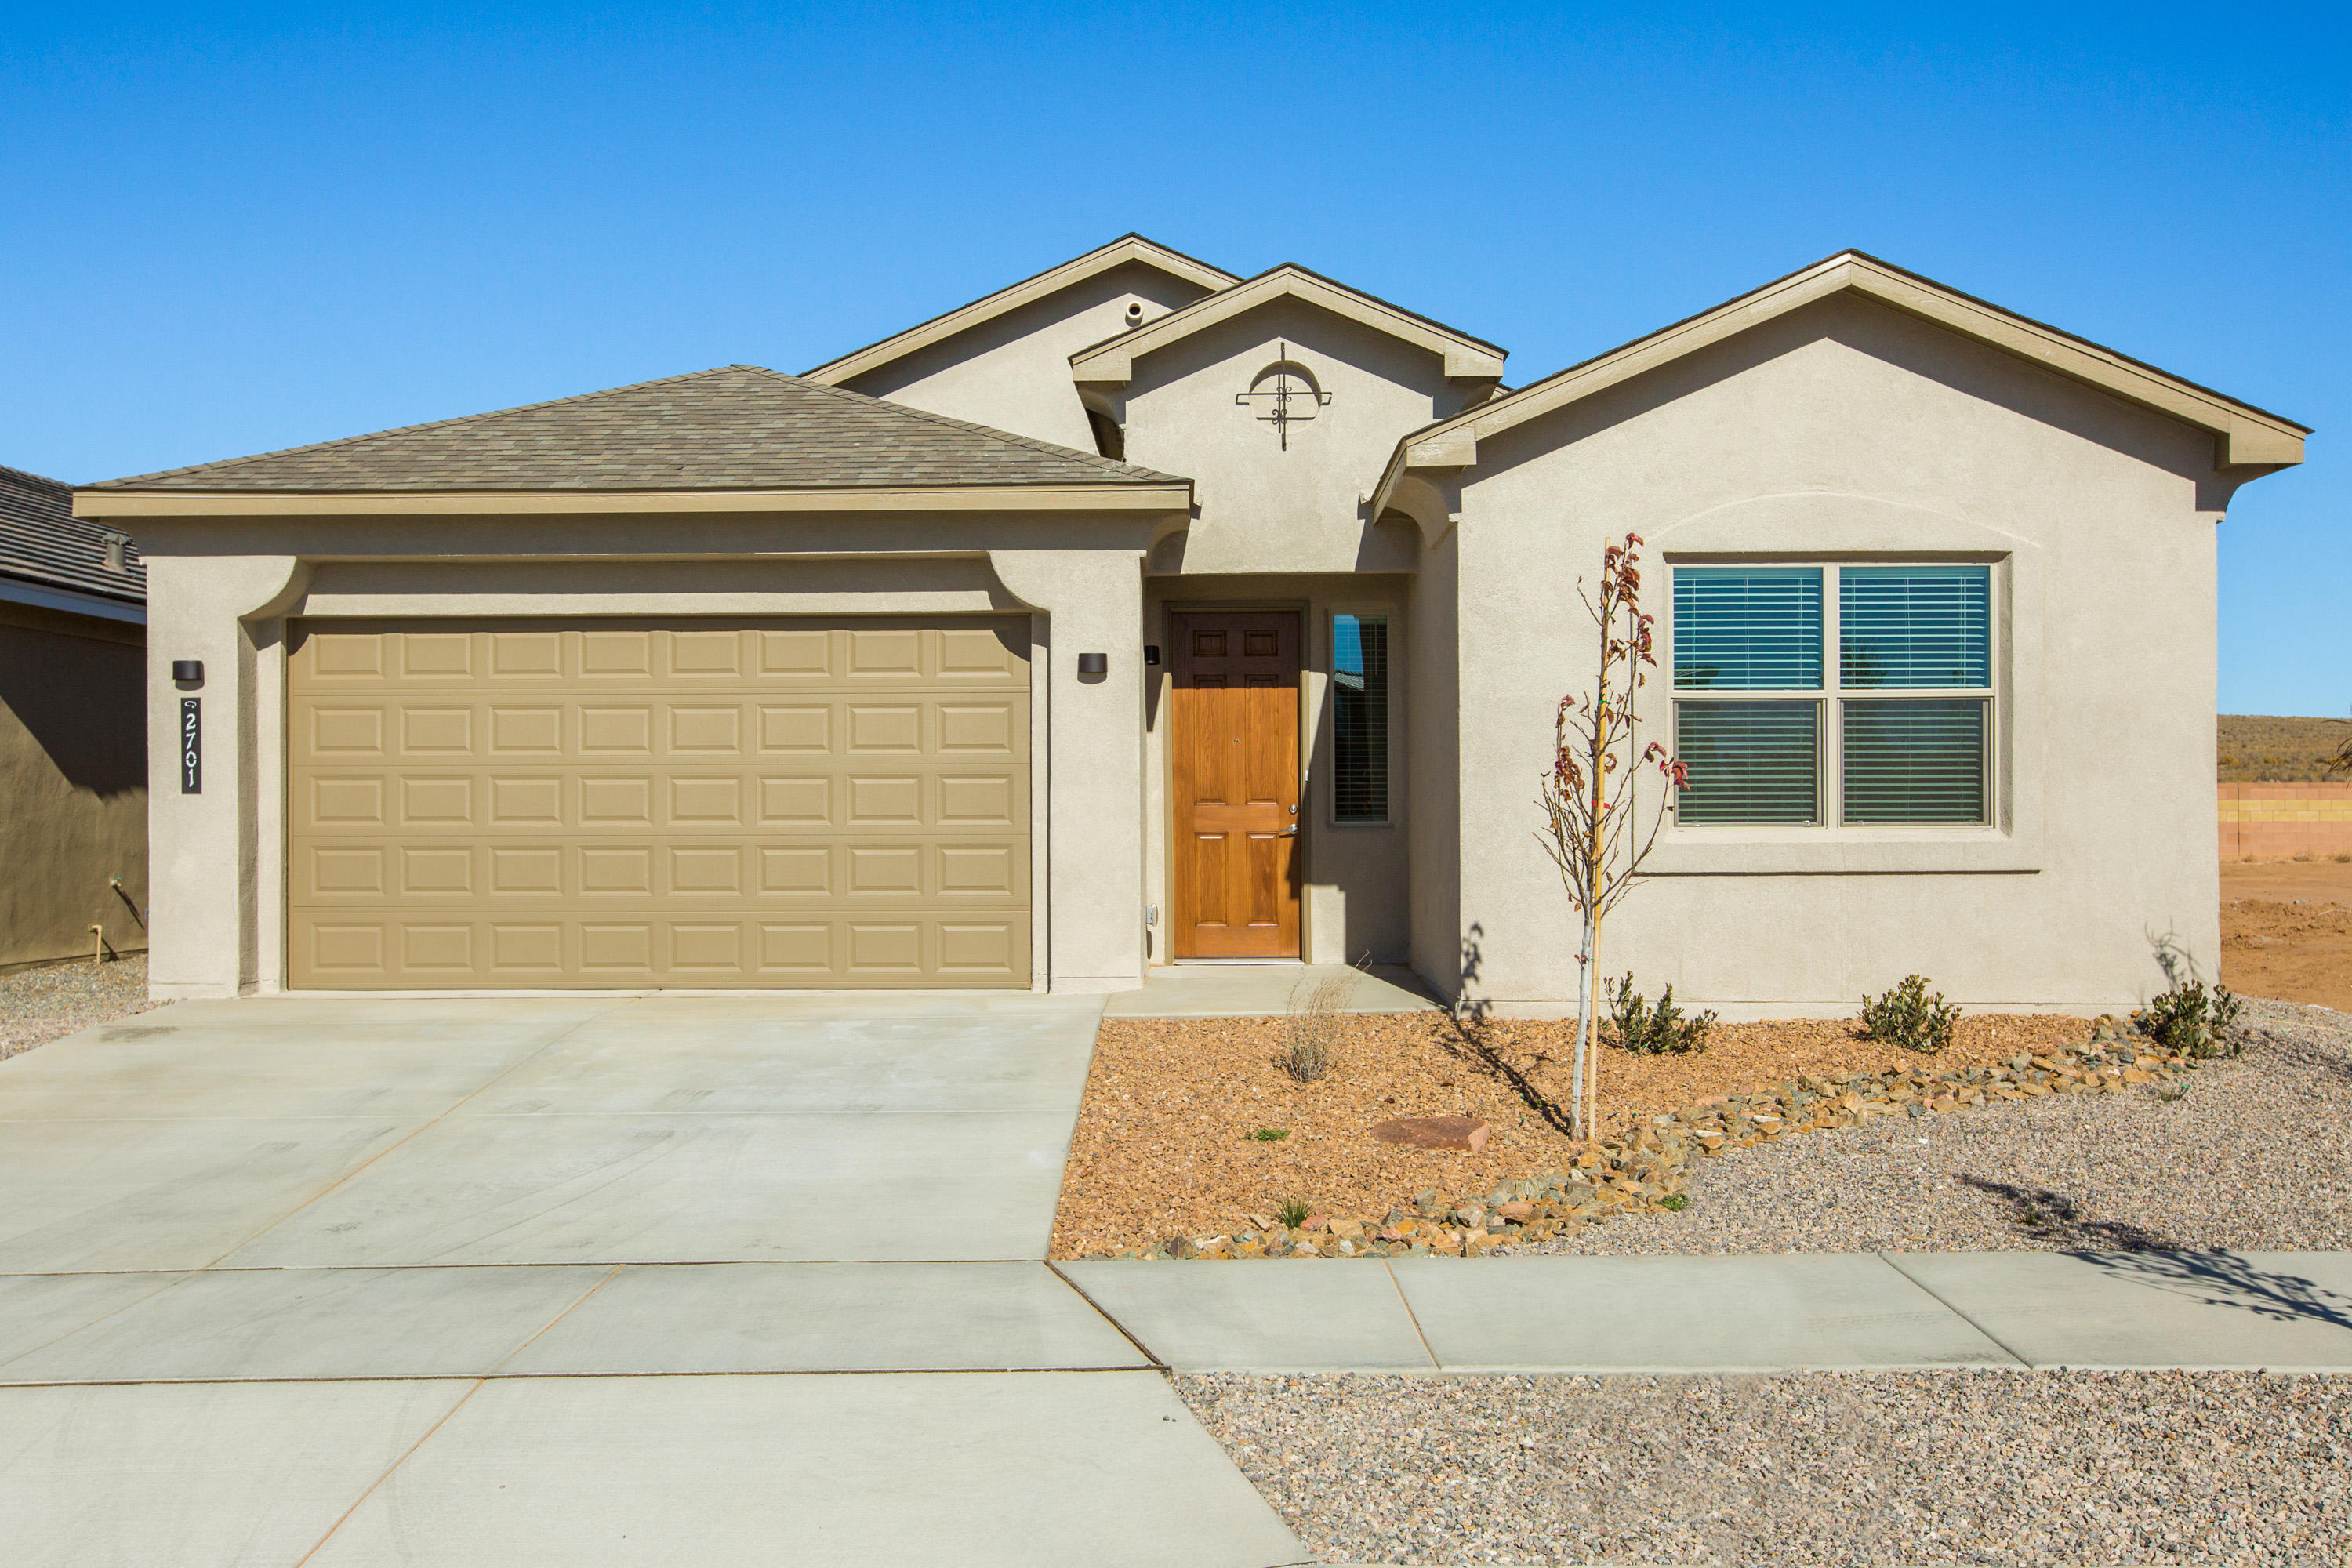 11408 ROCK SQUIRREL Avenue SE Property Photo - Albuquerque, NM real estate listing